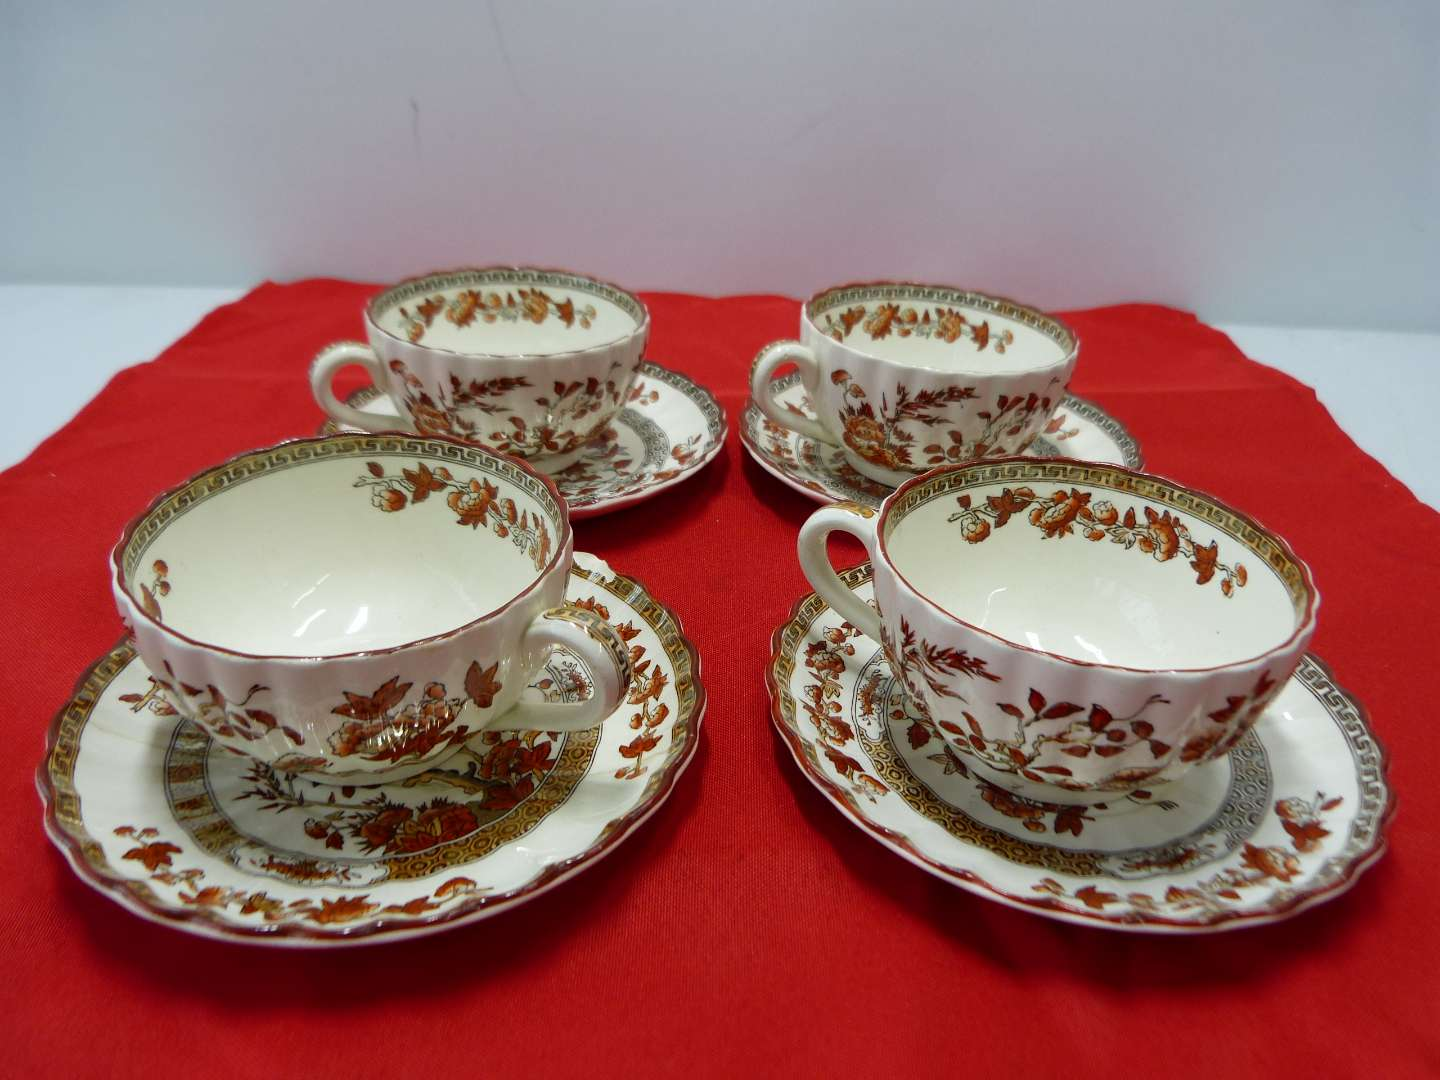 """Lot # 84  Copeland Spode collection cups saucers in the """"India Tree) pattern (one saucer repaired)"""